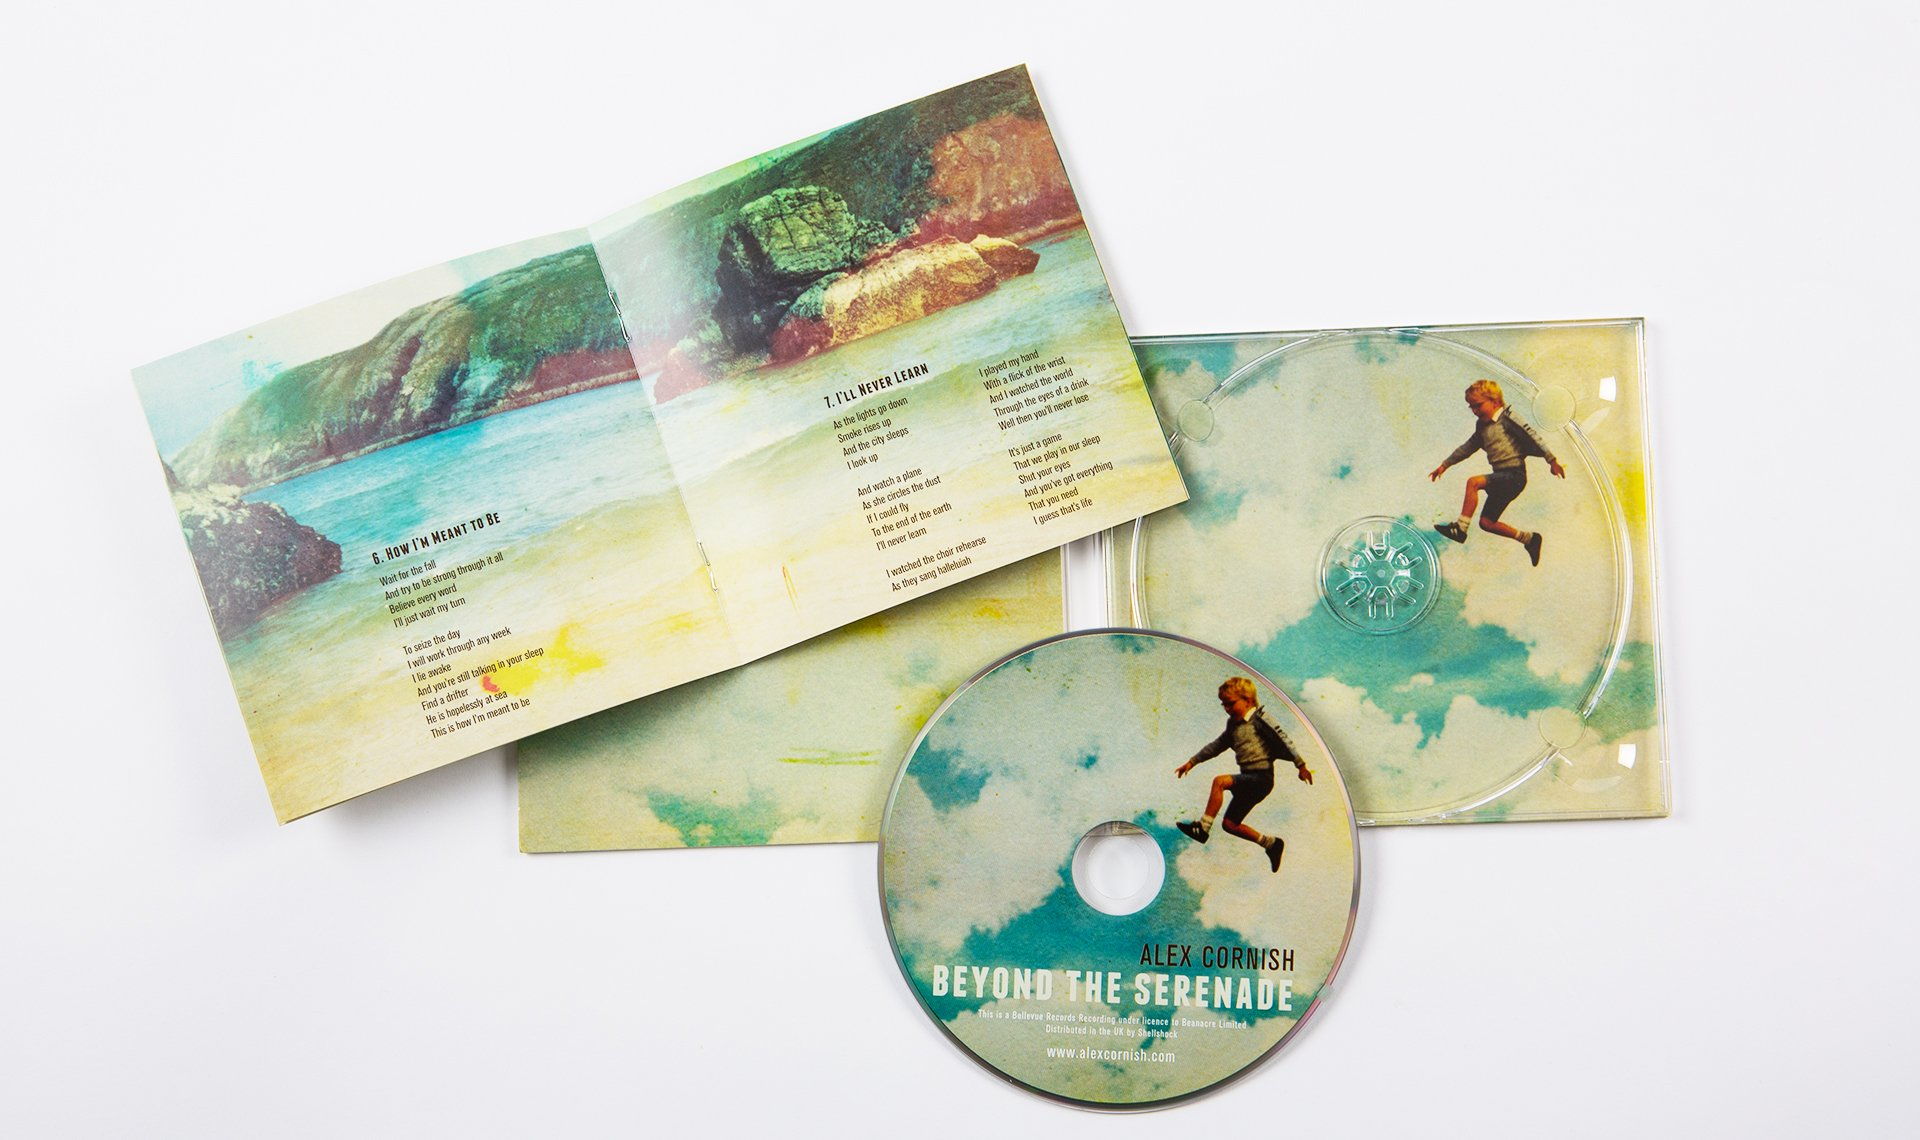 Alex Cornish CD Artwork depicts Alex as a young boy jumping into the air